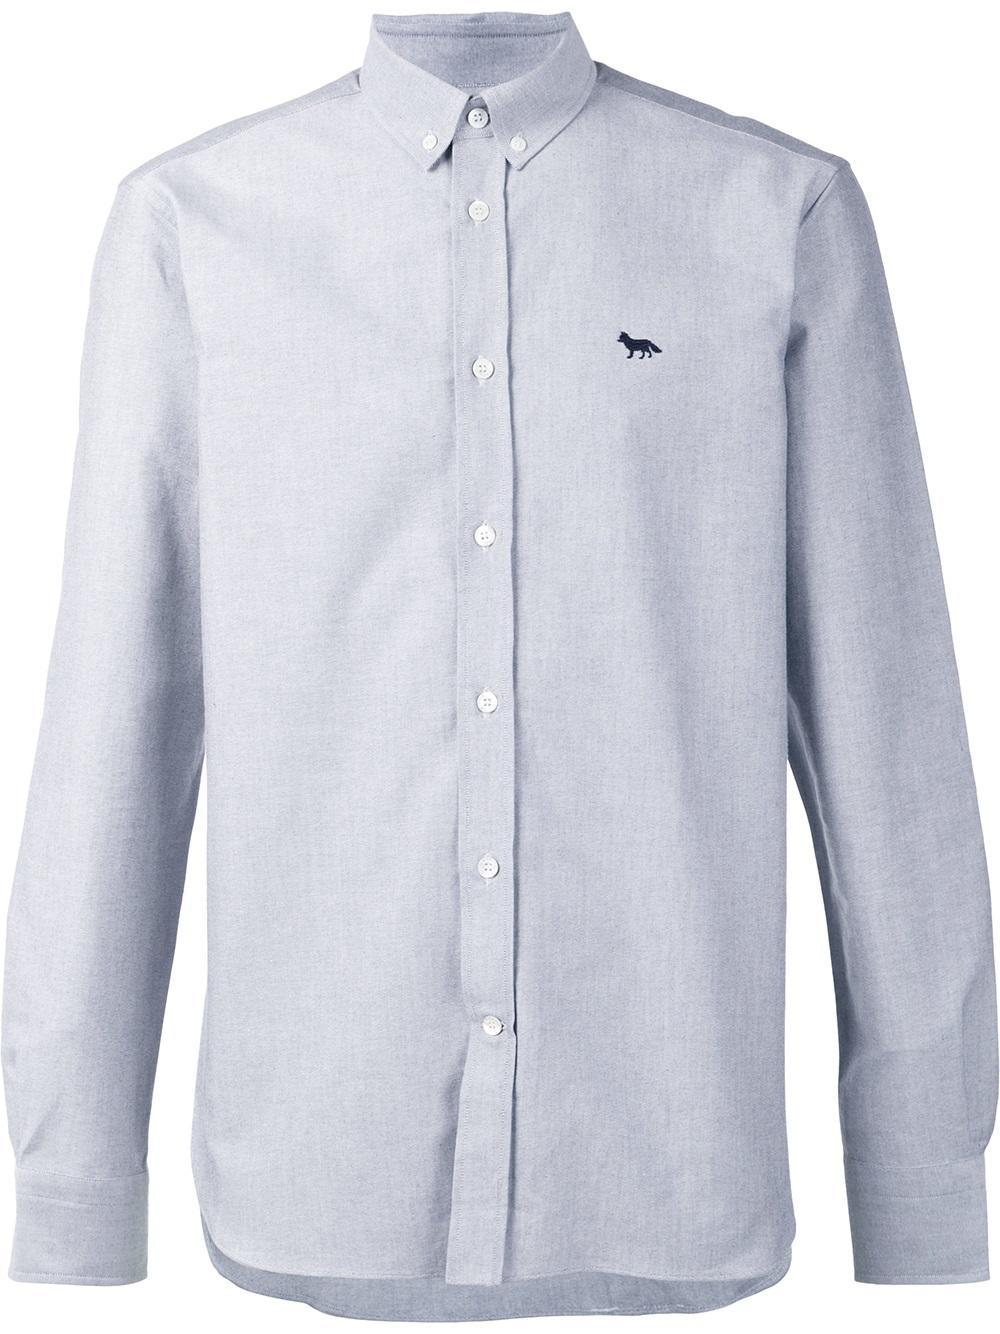 Maison kitsun maison kitsun classic button down shirt in for Grey button down shirt